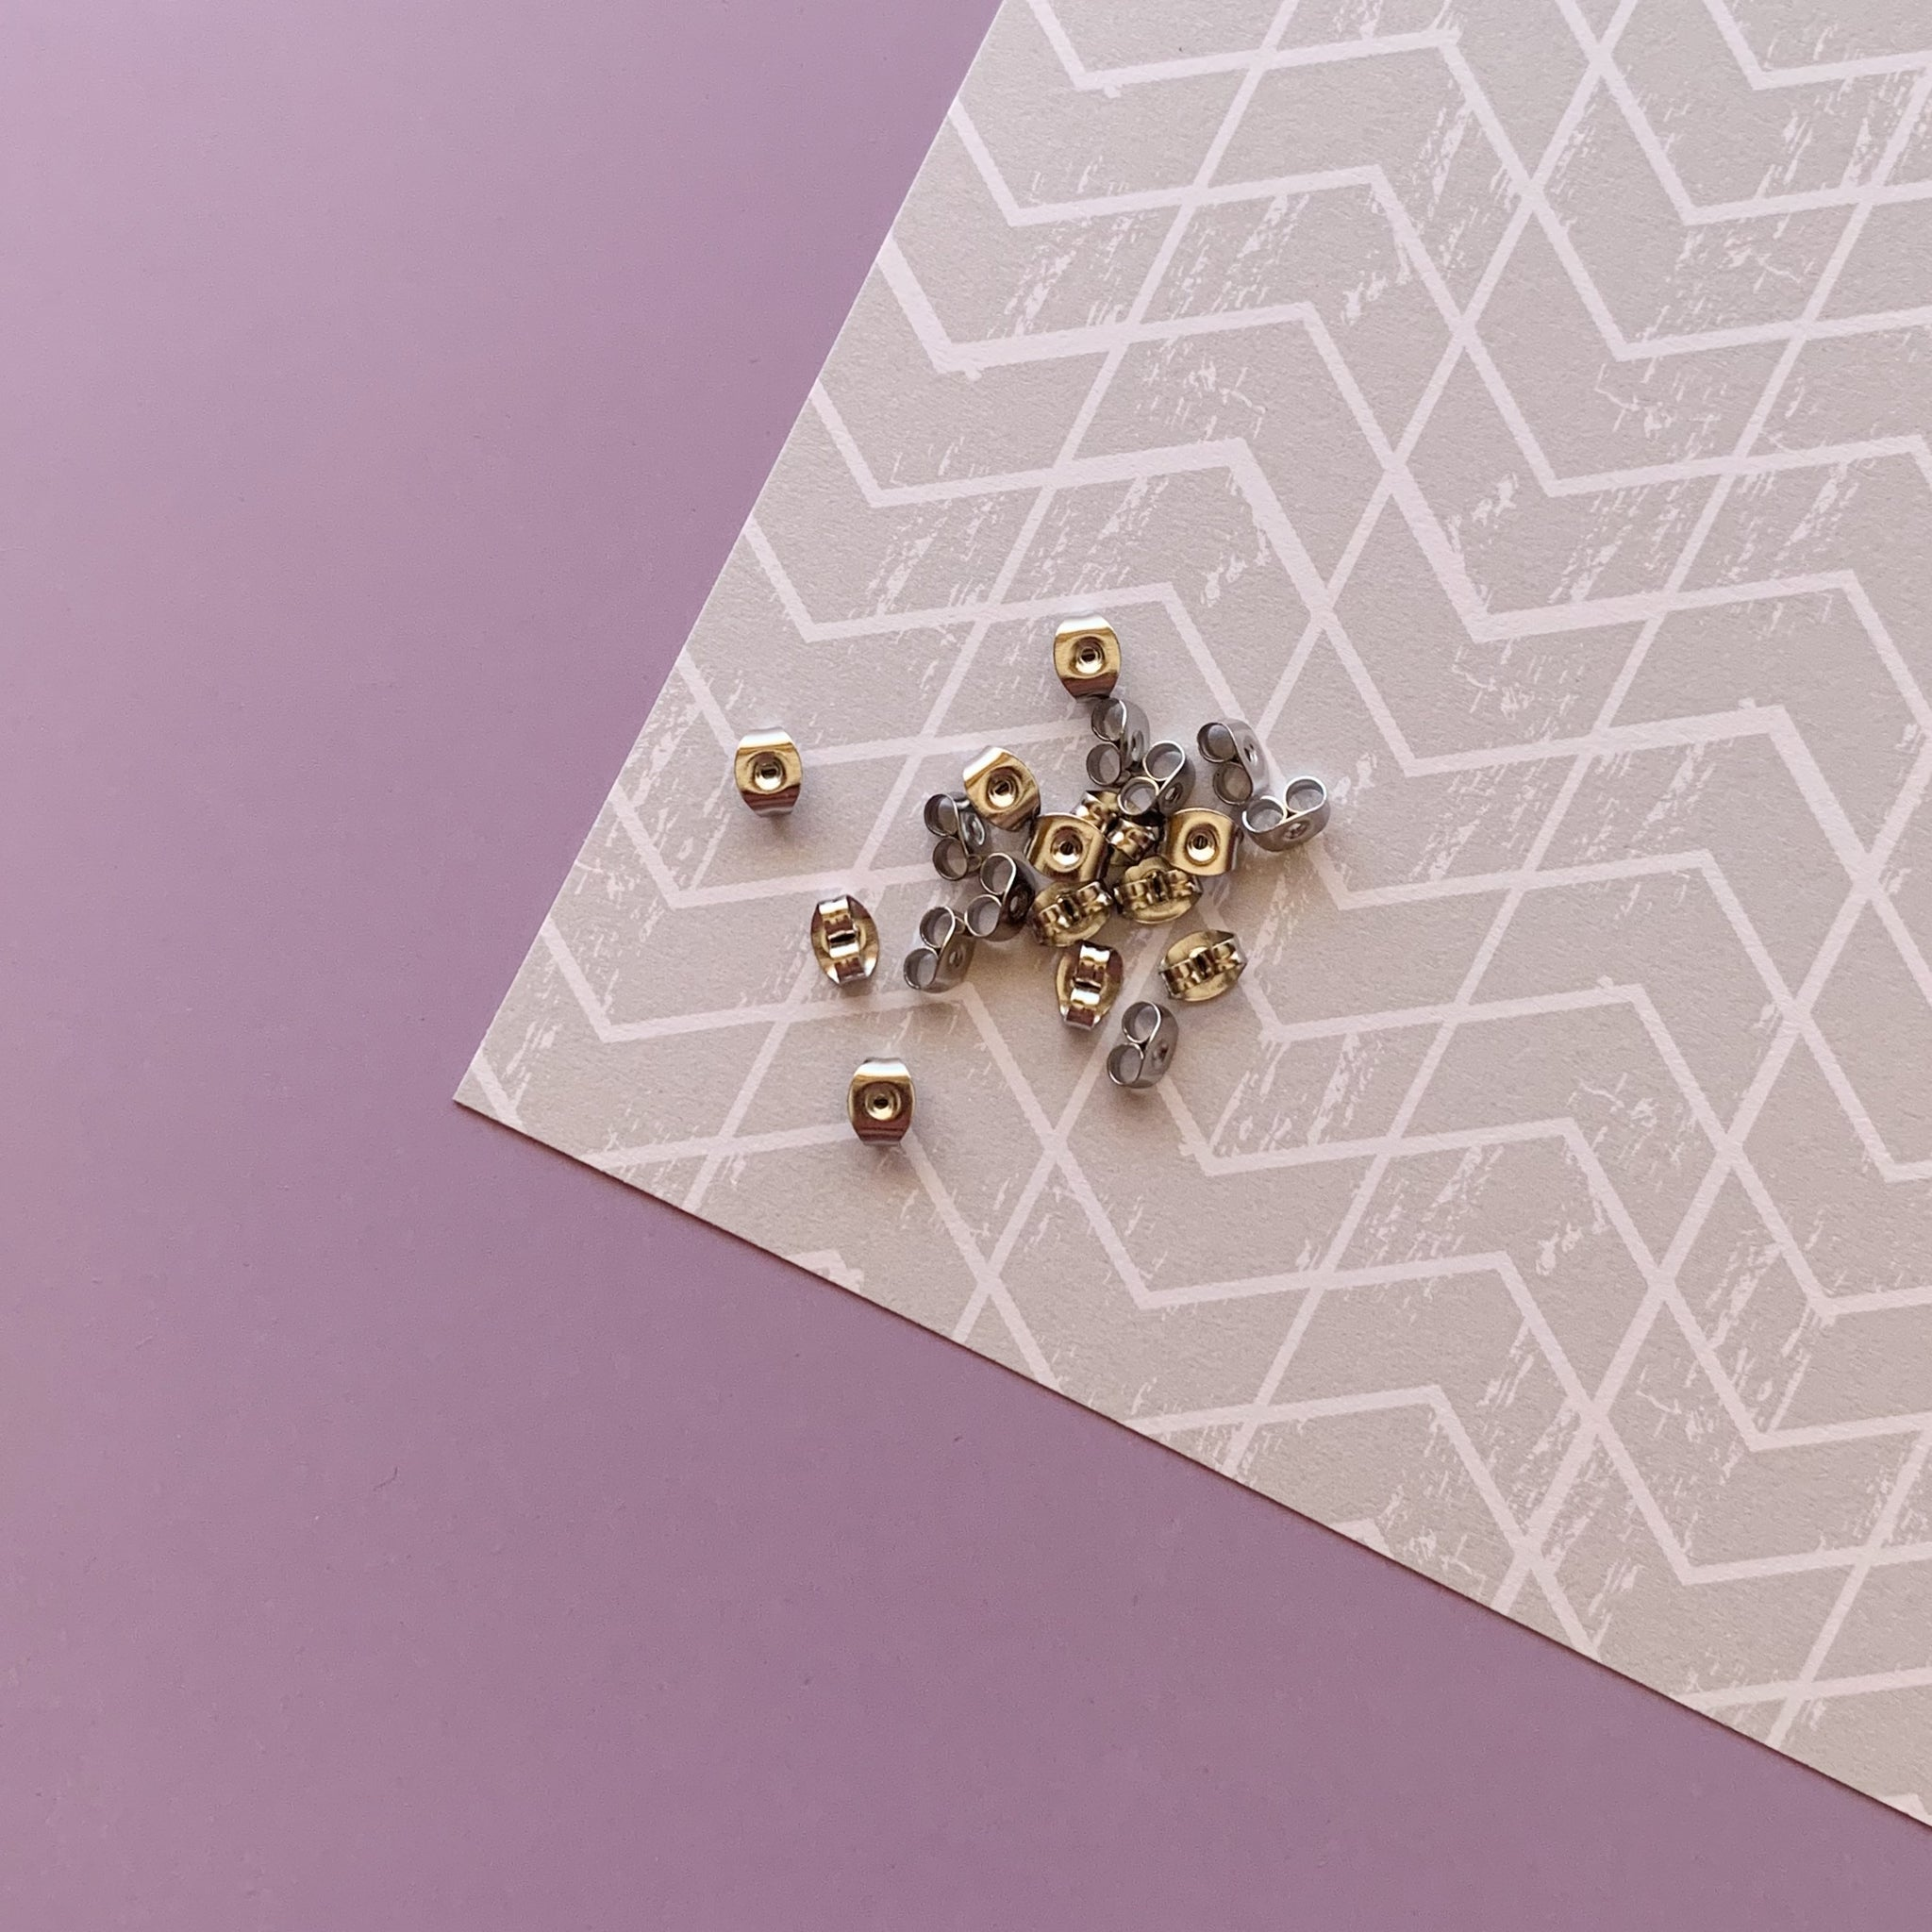 Extra Earring Backs - Stainless Steel